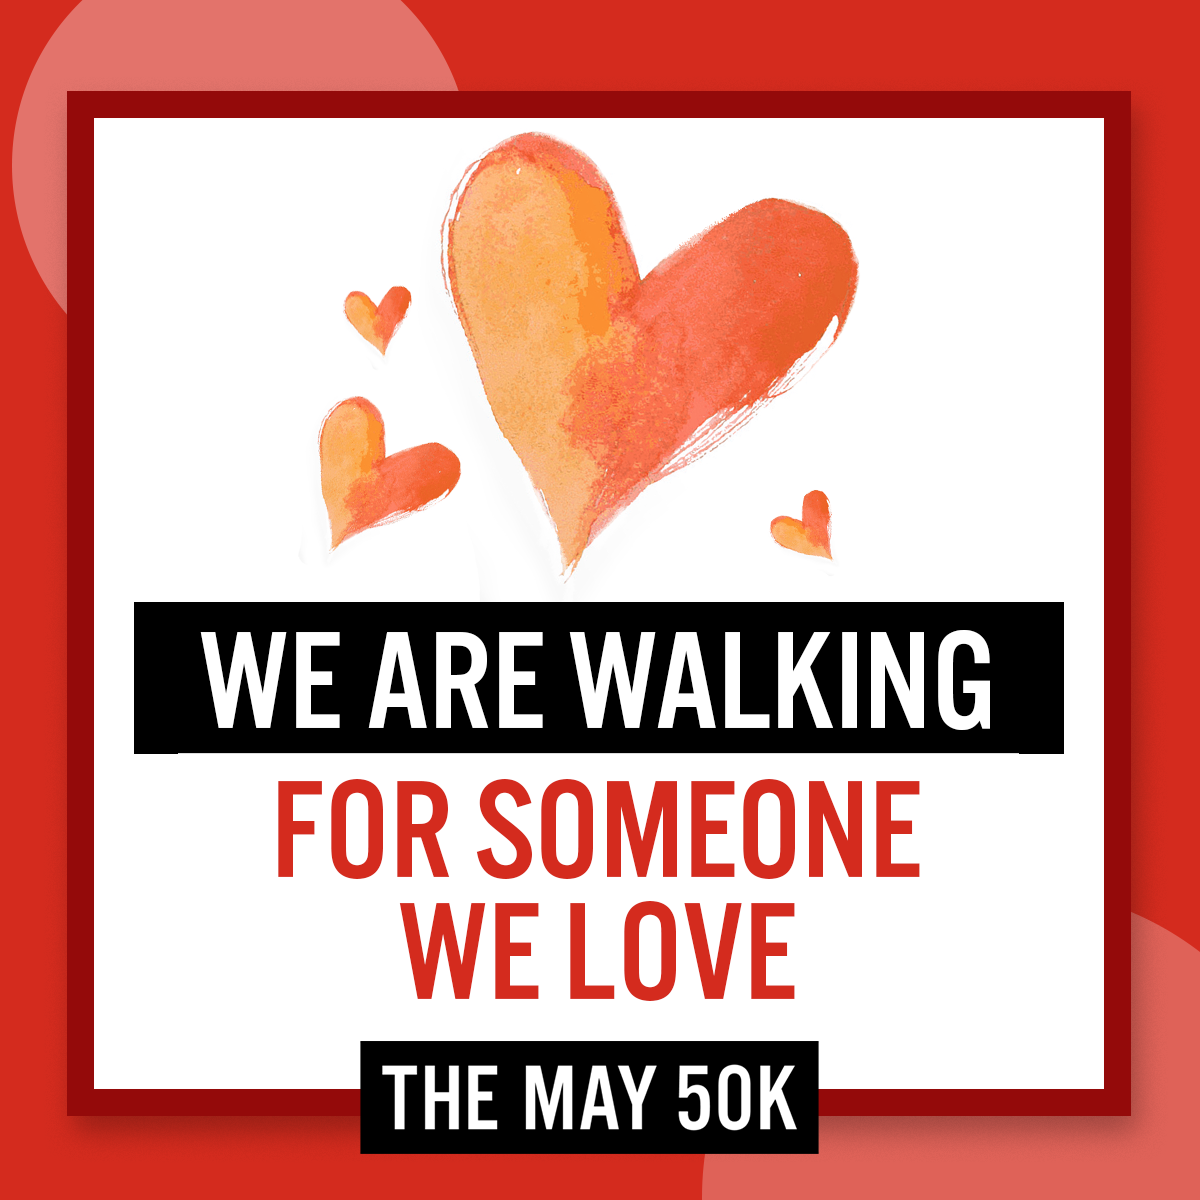 Walk for Someone Love - Team